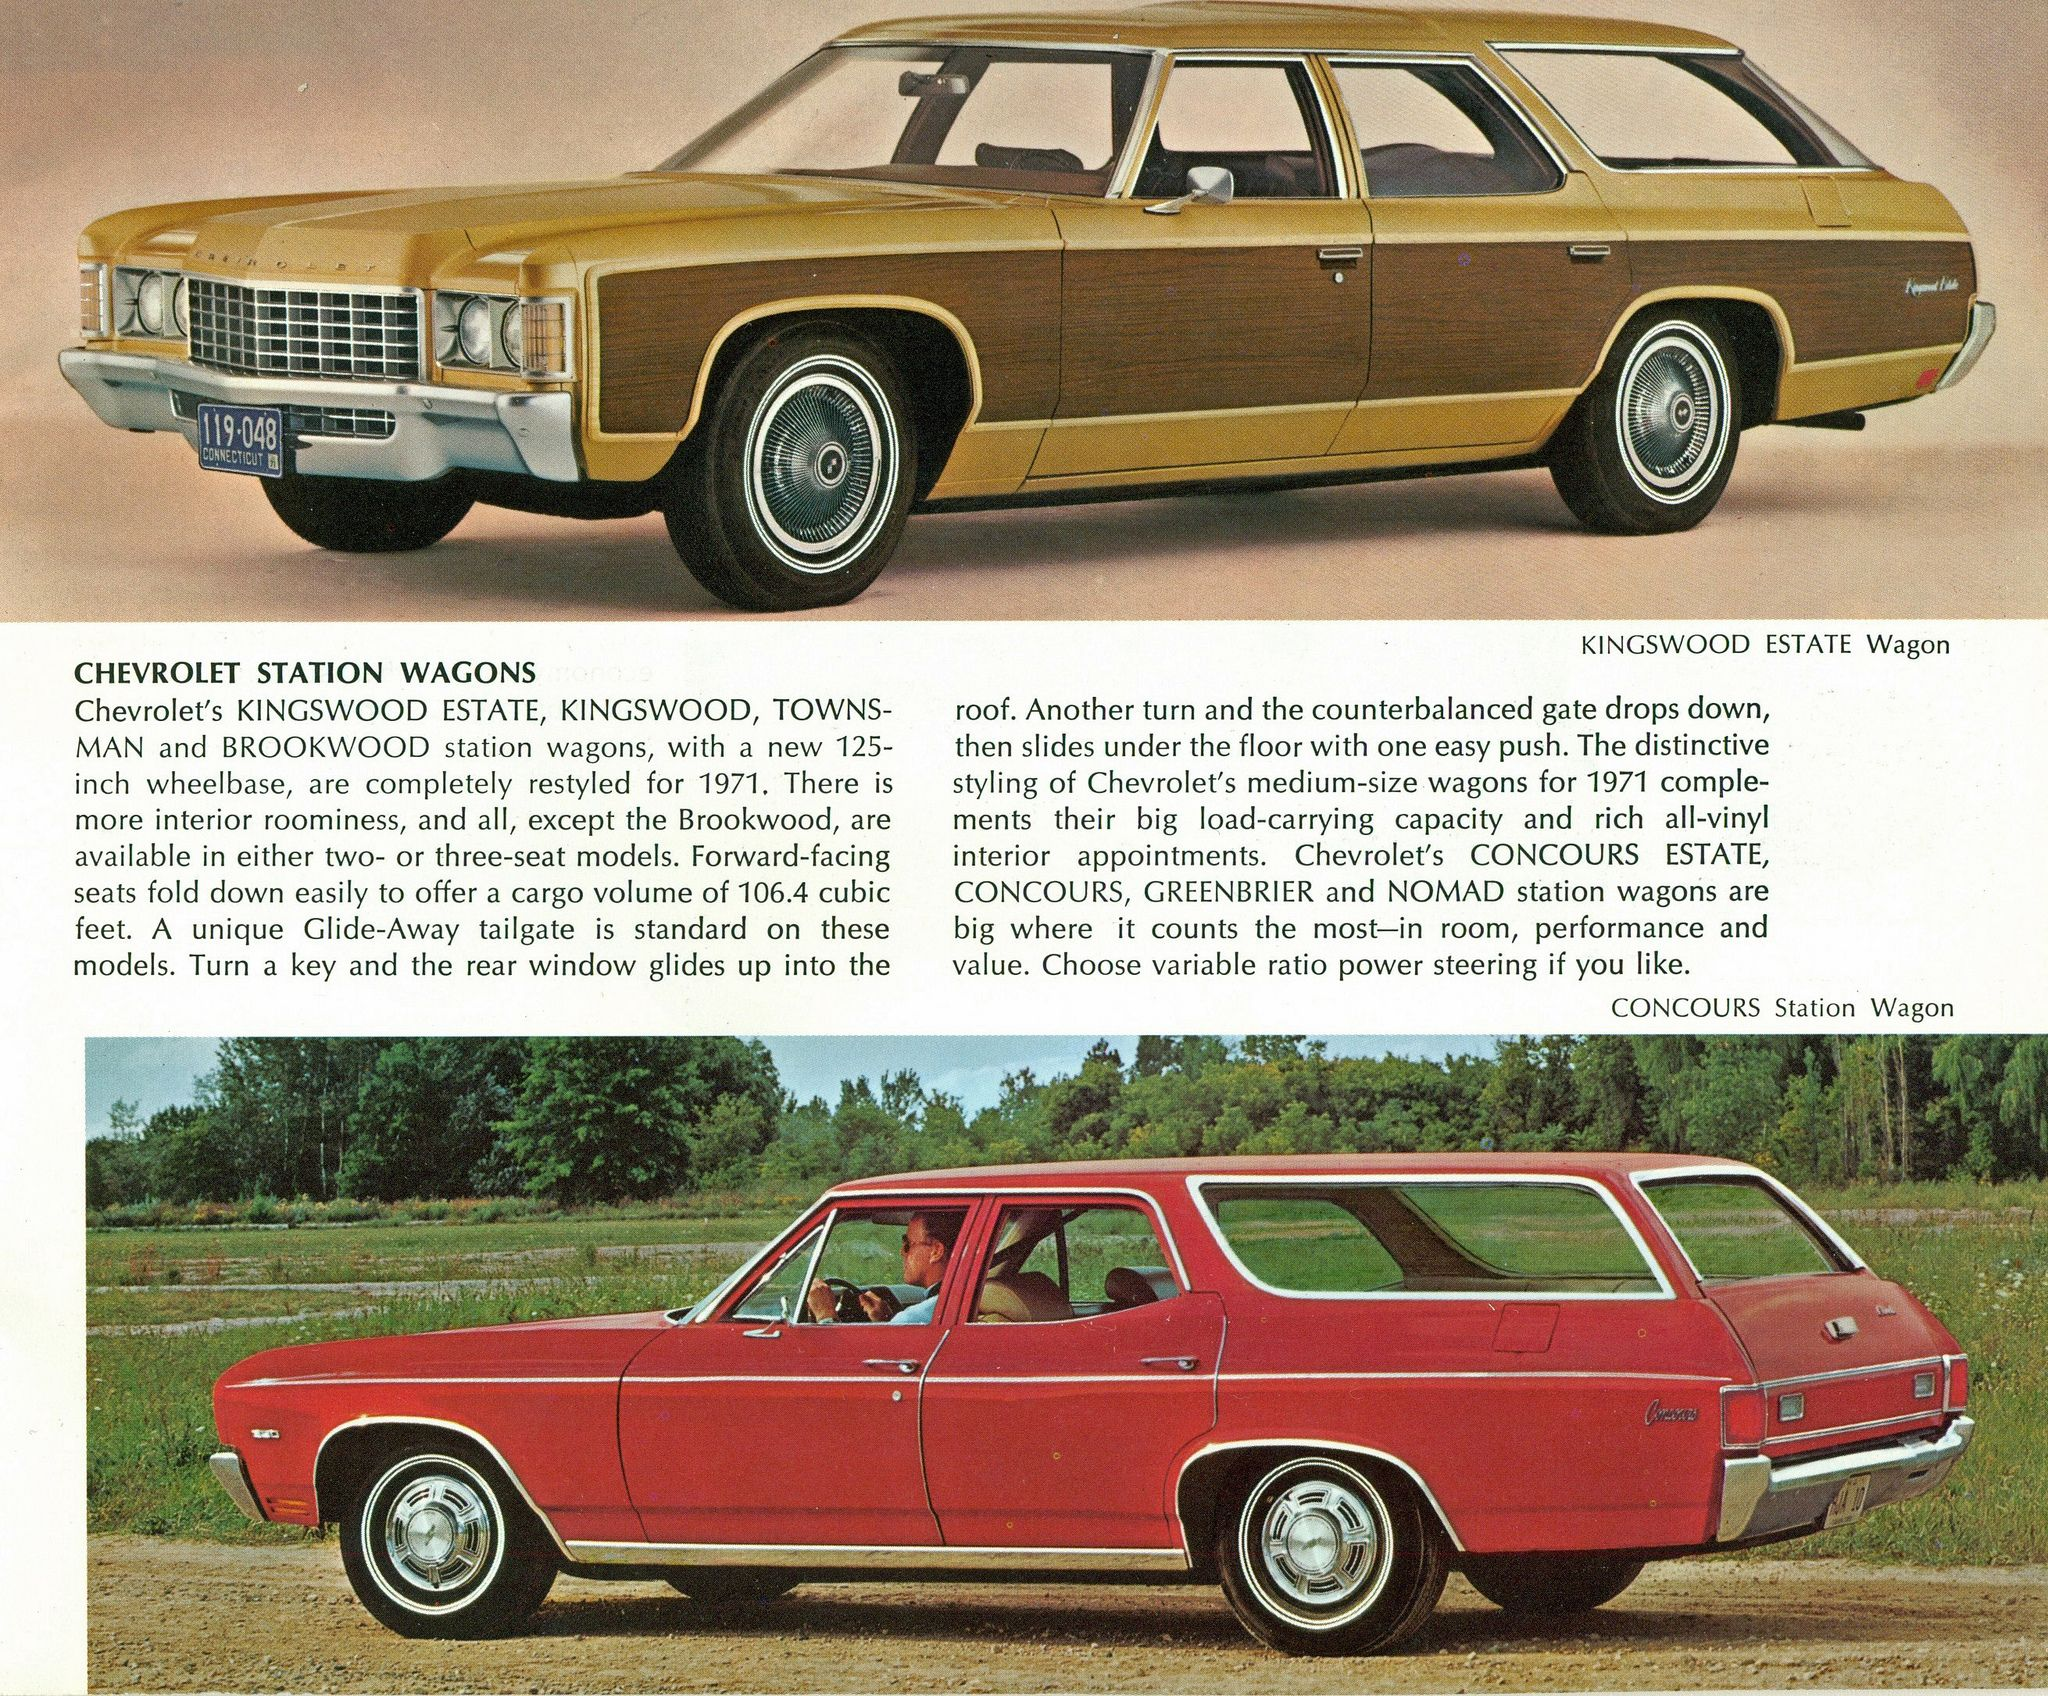 1971 Chevrolet Kingswood Estate And 1970 Chevelle Malibu Concours Station Wagon Station Wagon Chevrolet Wagons